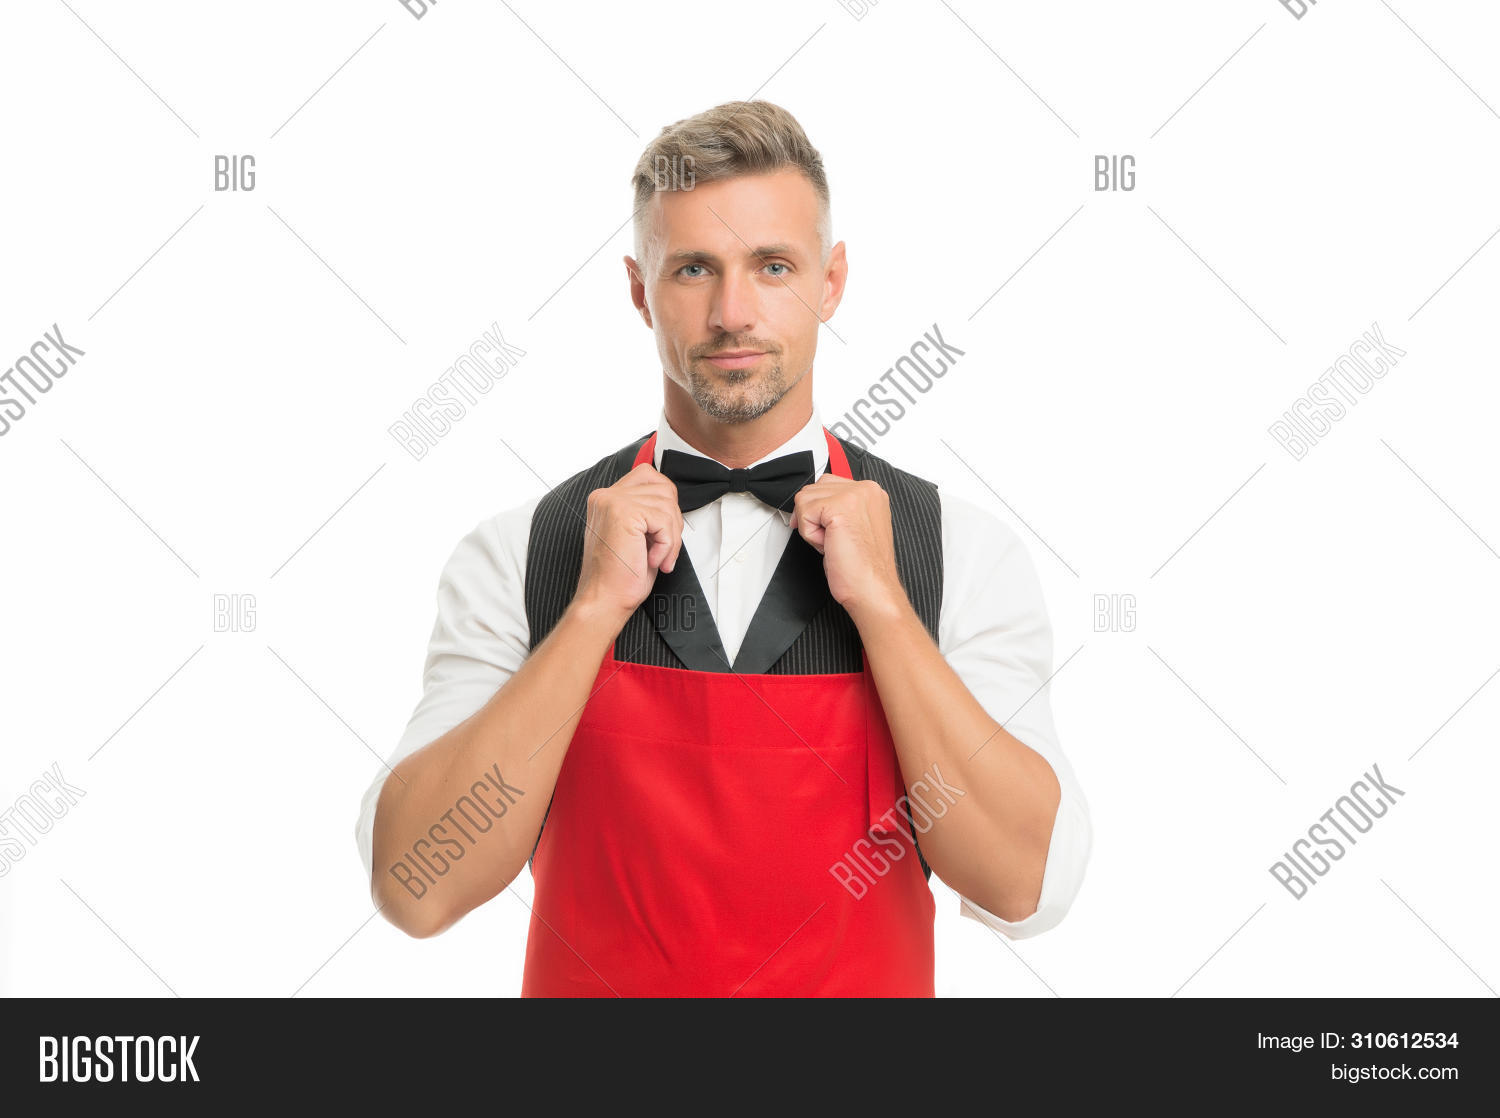 apron,background,barber,beard,bearded,cafe,can,chef,concept,confident,cook,dinner,elegant,expert,food,groomed,help,helpful,hipster,kitchen,lunch,man,mature,occupation,professional,ready,red,restaurant,servant,serve,service,staff,stand,to,uniform,waiter,welcome,well,white,work,worker,you